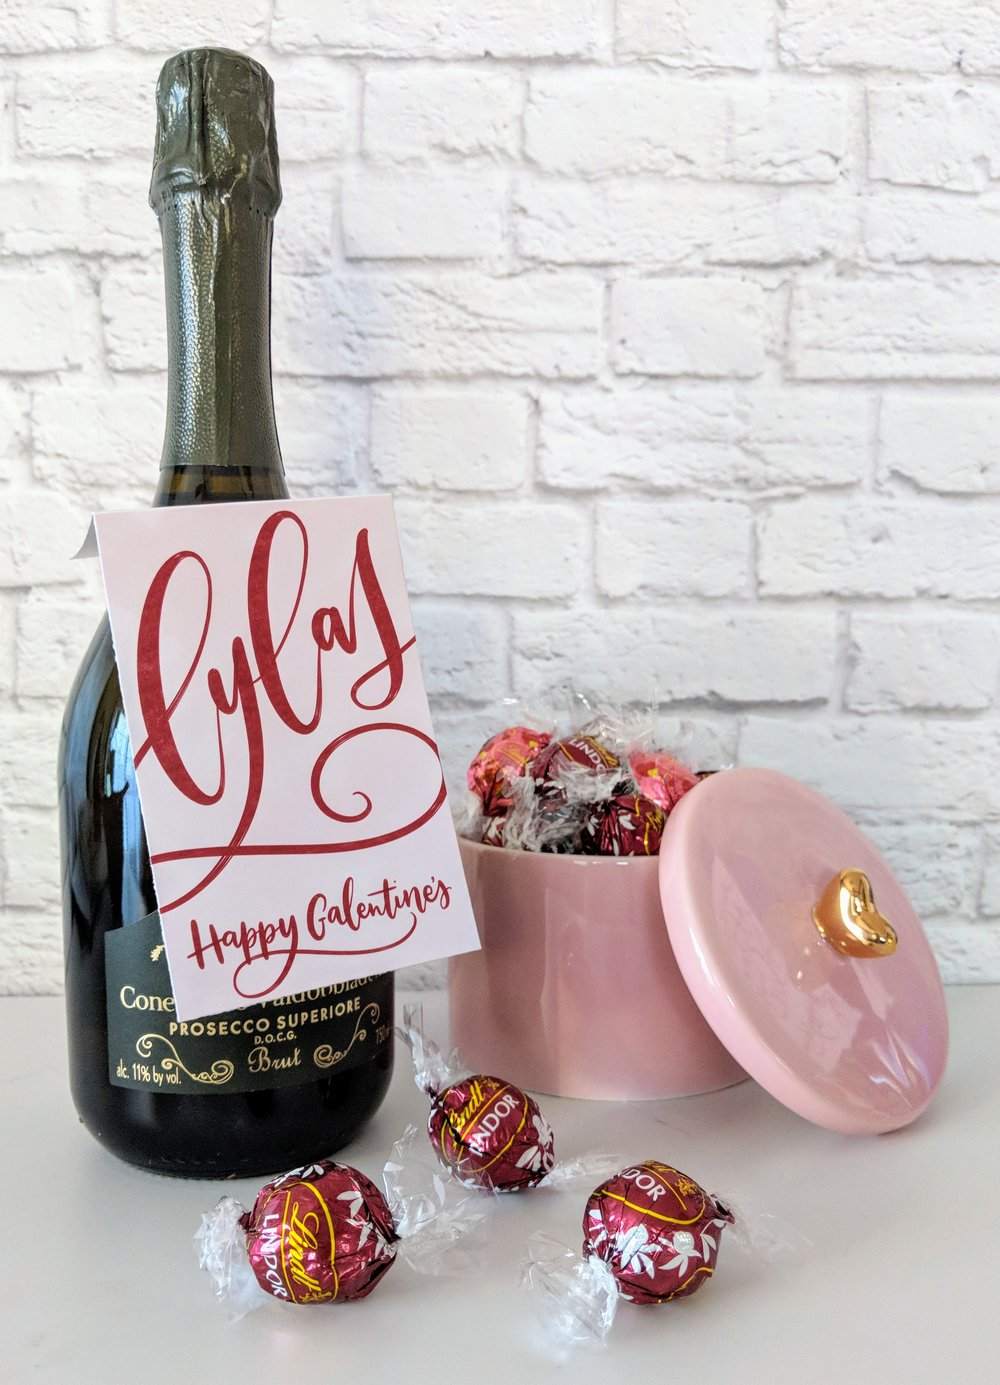 Galentine's Wine Bottle Tags by Manayunk Calligraphy - LYLAS